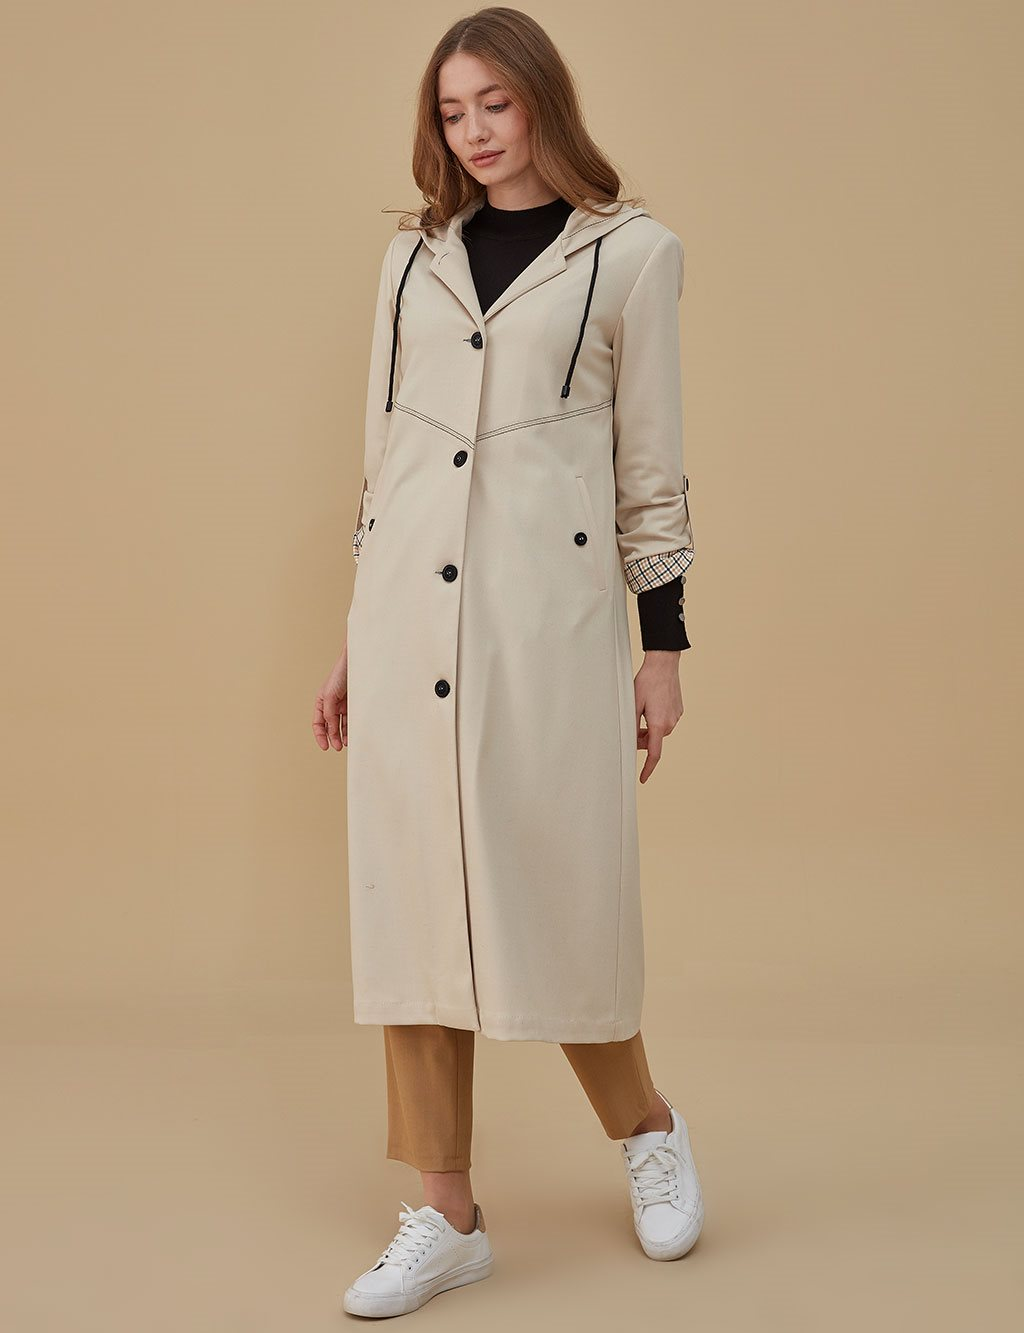 Coat With Hood A9 17075 Cream